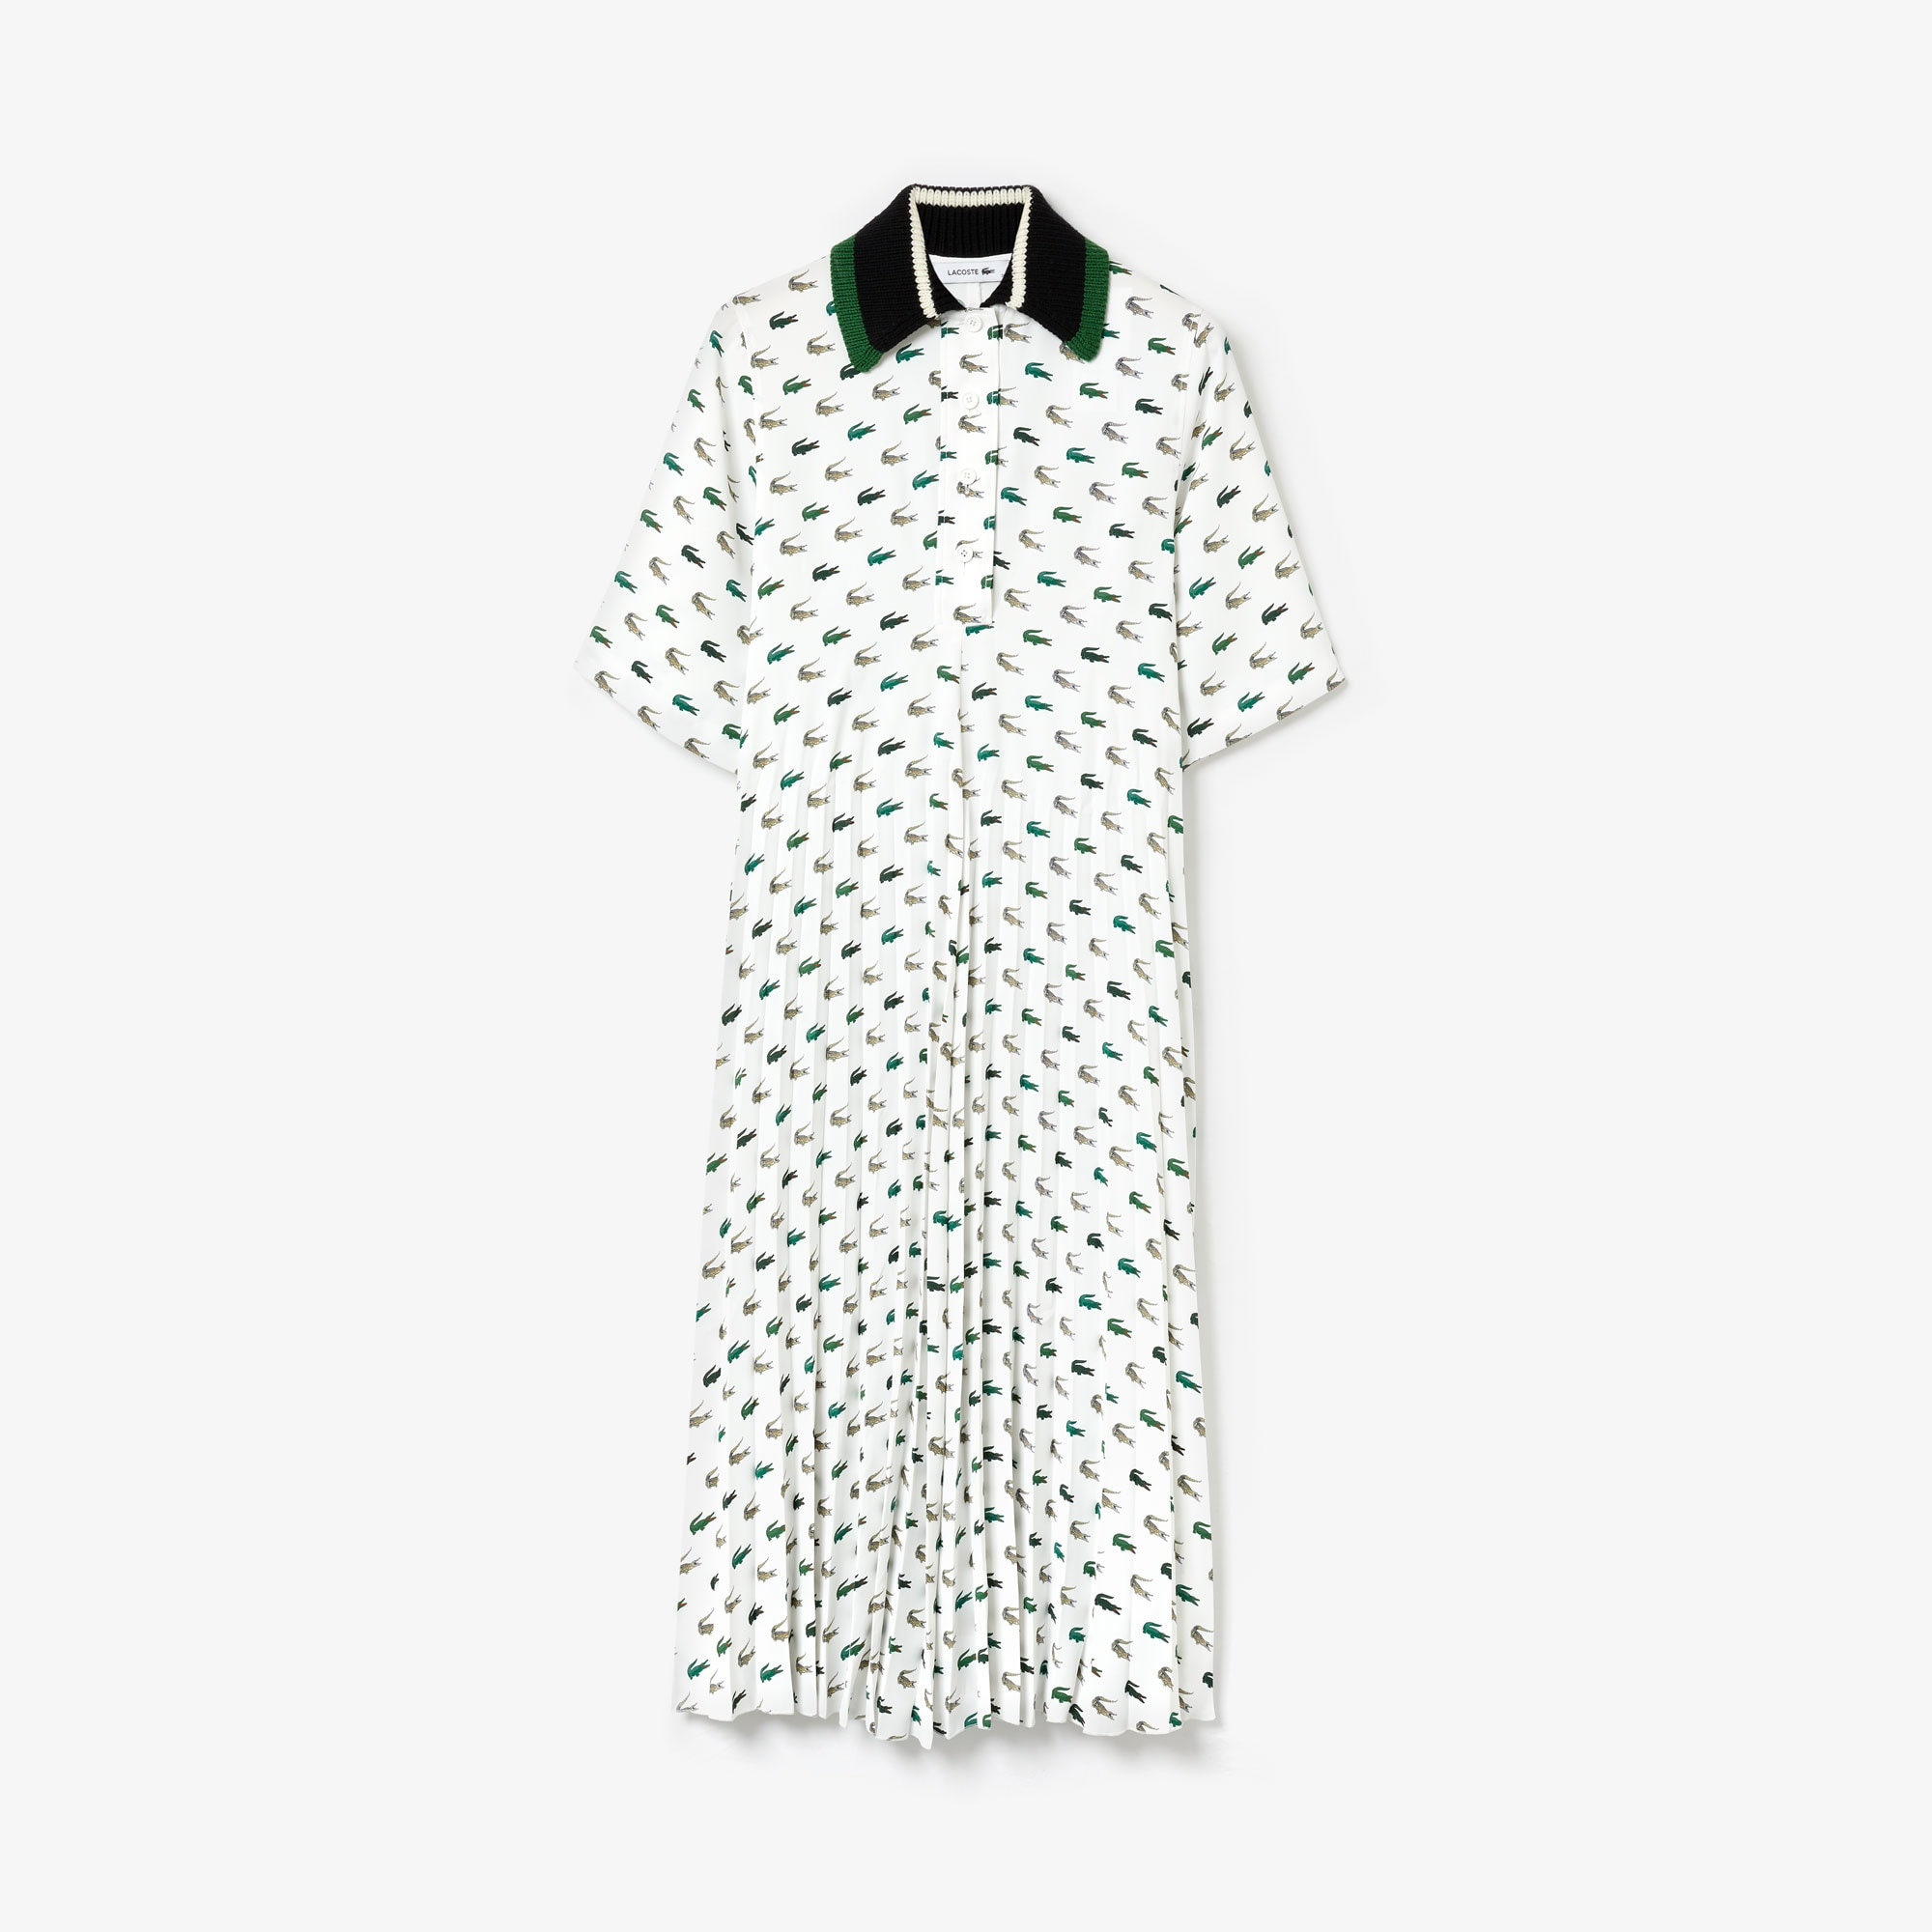 Women's Fashion Show Printed Polo Dress with Knitted Collar